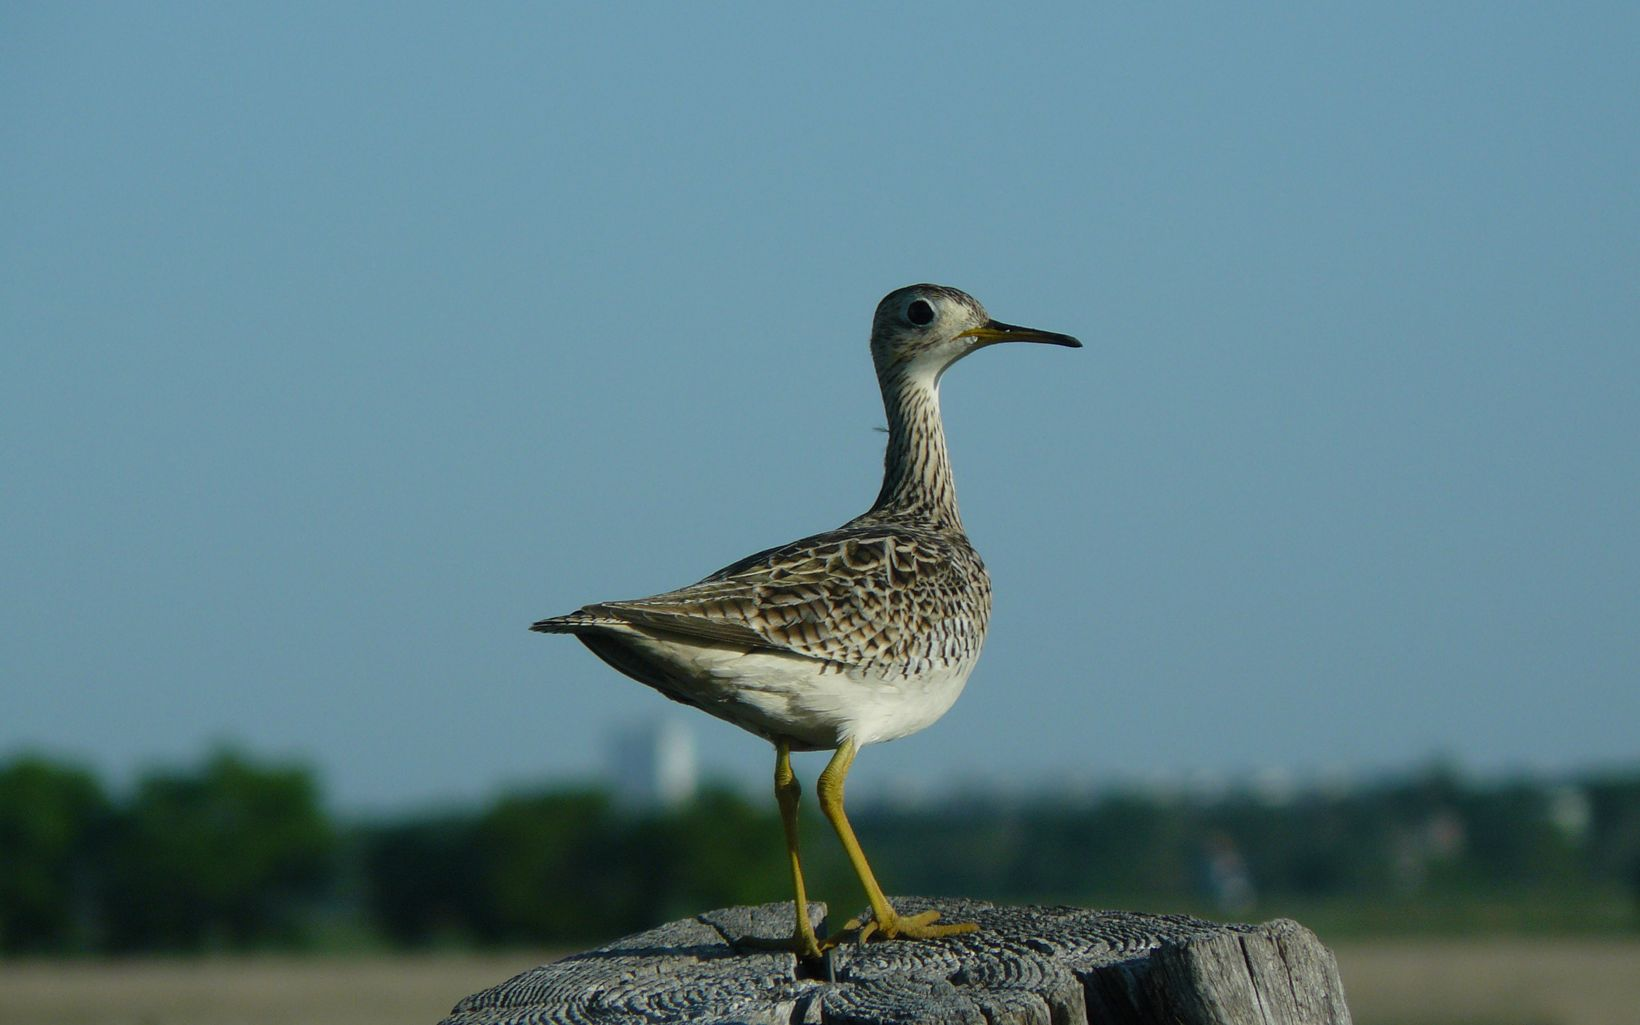 Upland sandpiper standing on a wooden fence post